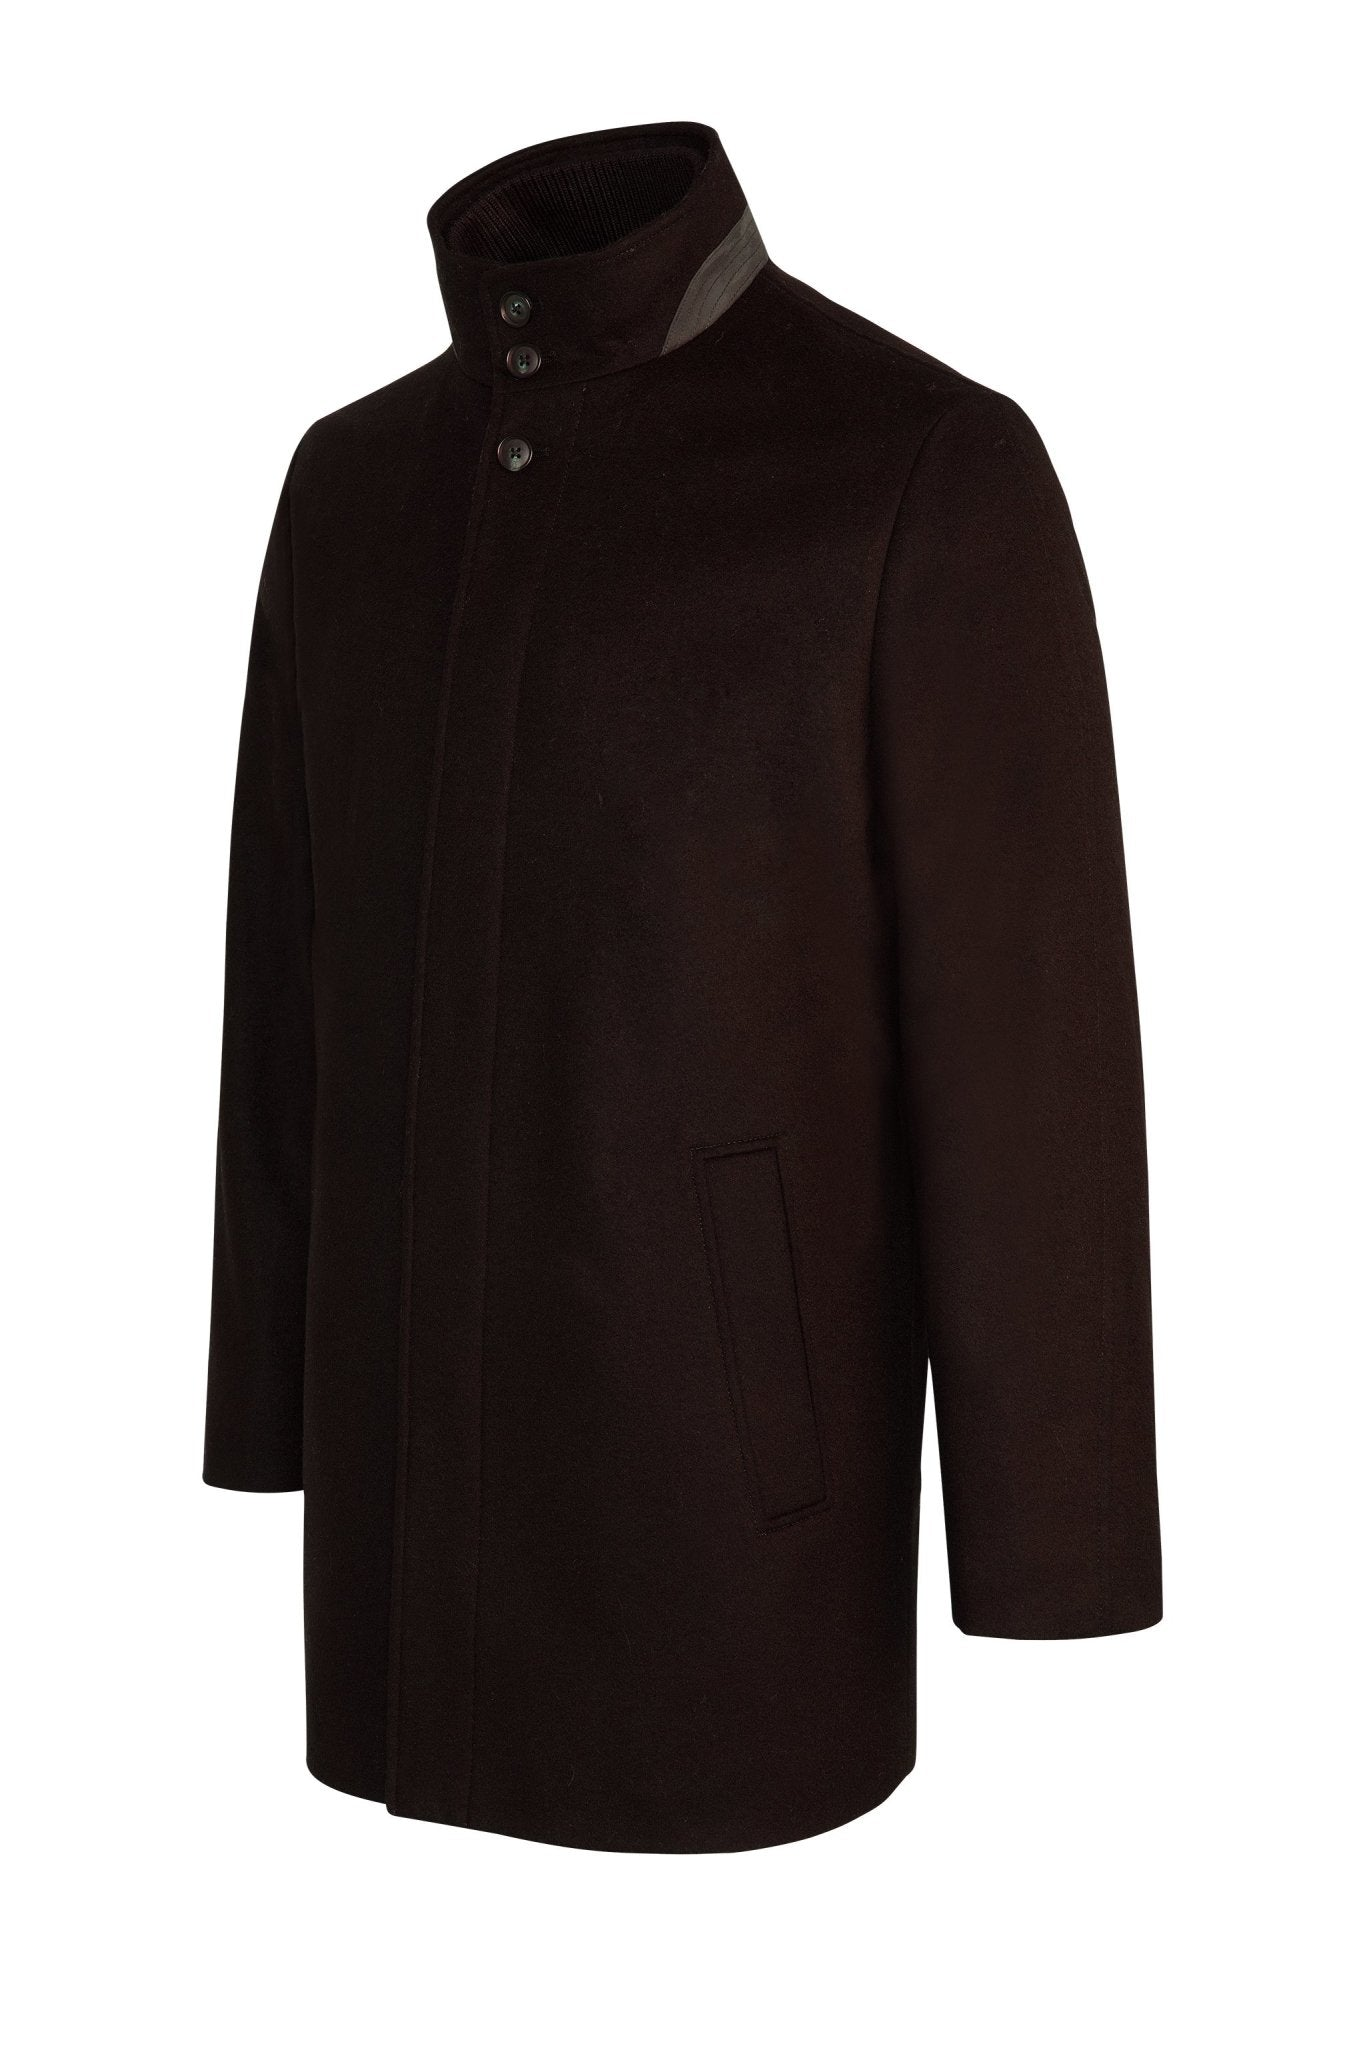 Black Mont-Royal Versatile Cashmere Wool Overcoat - Cardinal of Canada-US